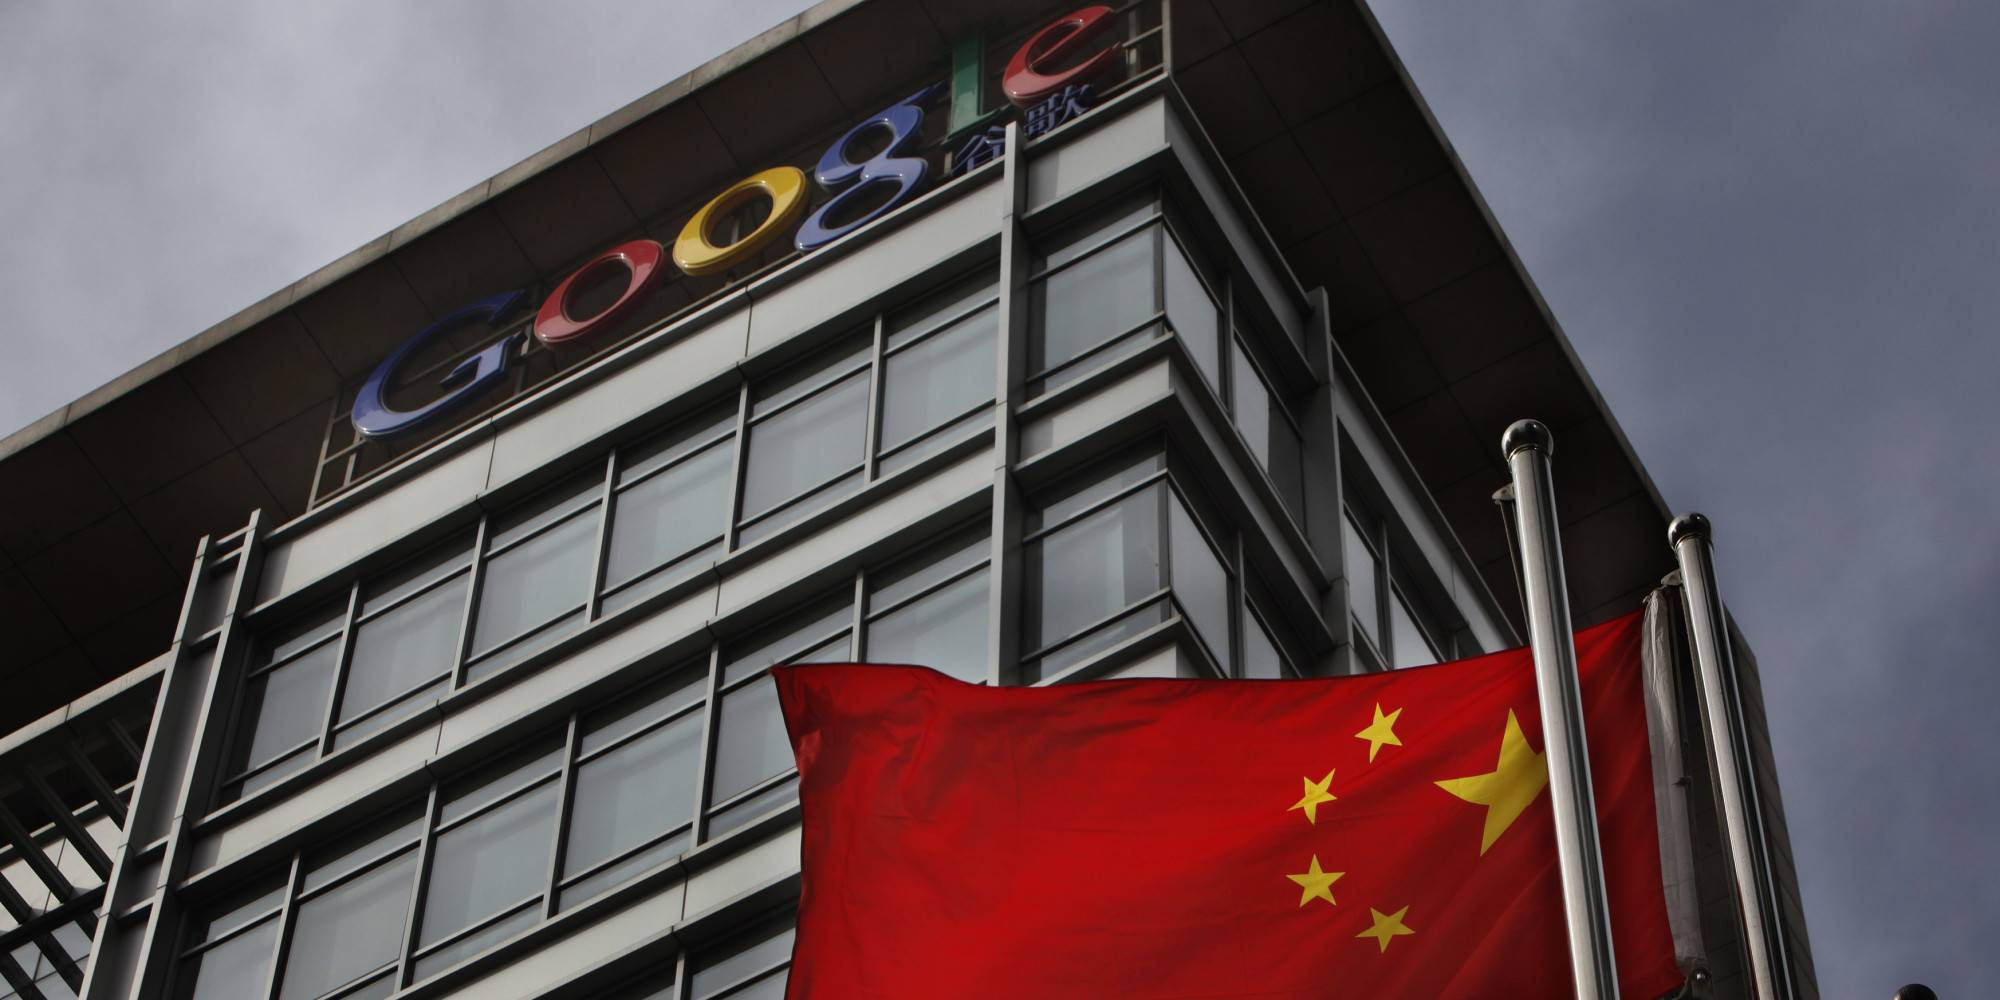 A Chinese flag blows in the air below the Google logo outside the Google China headquarters in Beijing Thursday, March 25, 2010. While Google's decision to move its Chinese search engine offshore challenging China's online censorship laws win praise in the U.S. and other countries, it's threatening to turn the company into a pariah in China. (AP Photo/ Gemunu Amarasinghe)